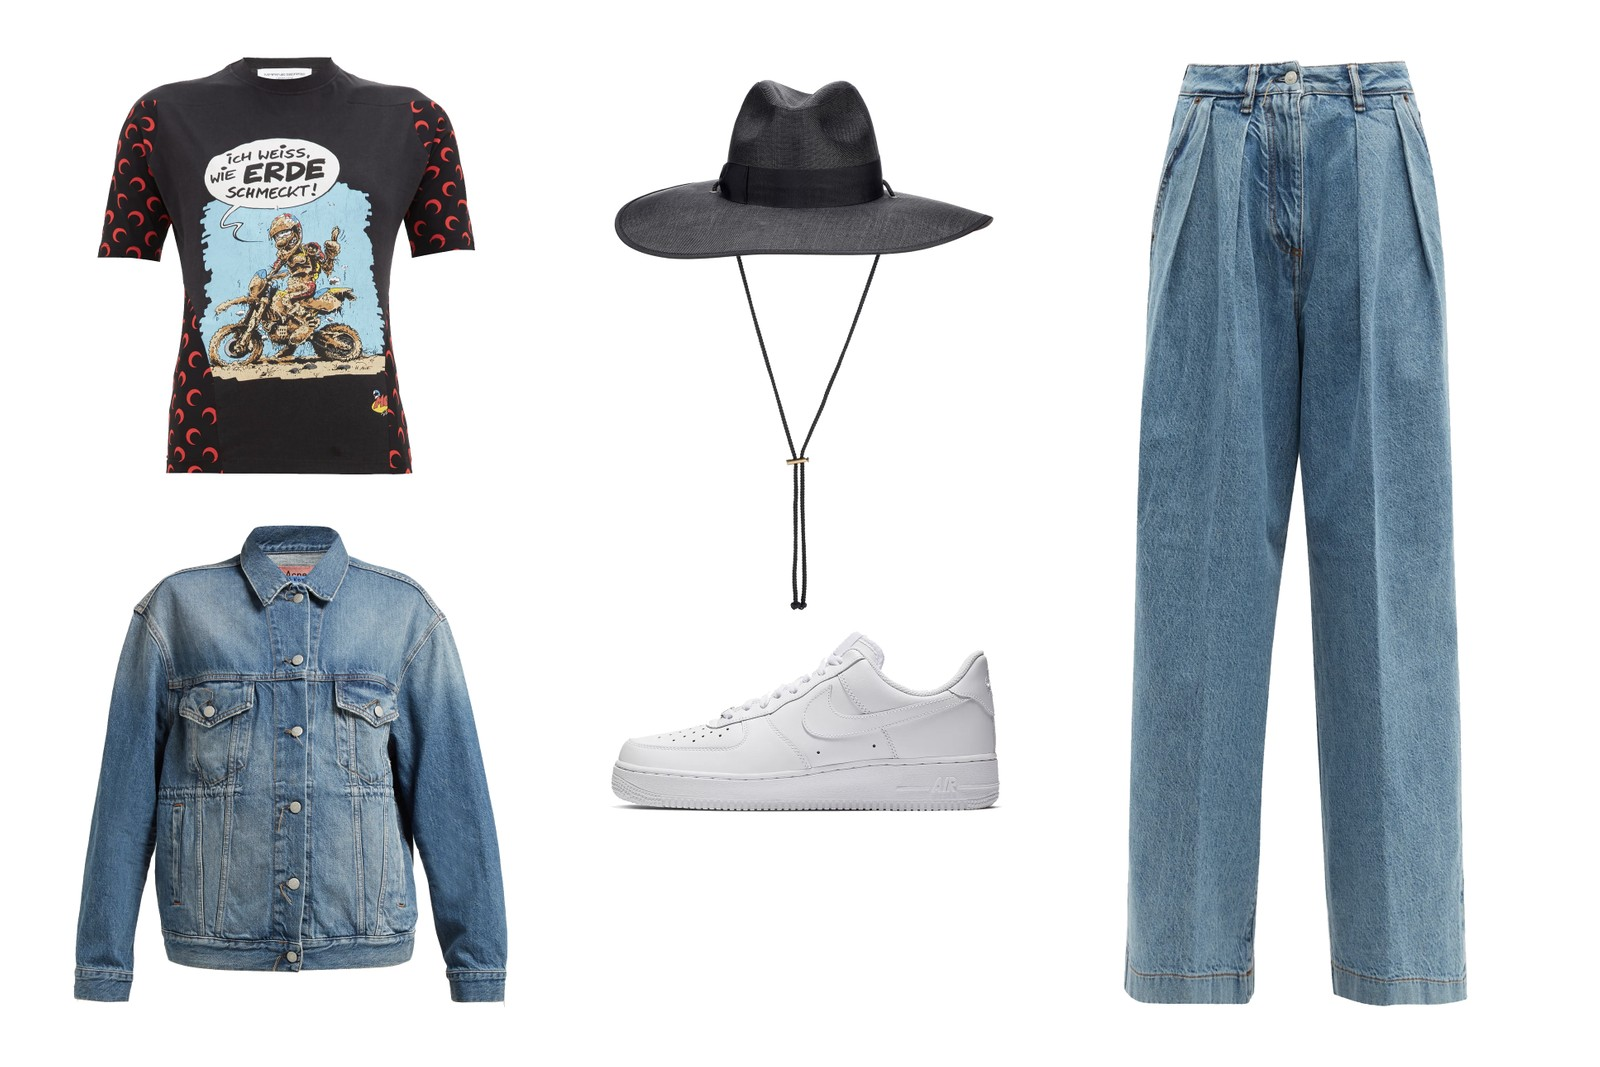 How To Wear The Cowboy Hat Fashion Trend Style Gucci Saint Laurent Acne Studios Outfit Inspiration Nike Marine Serre